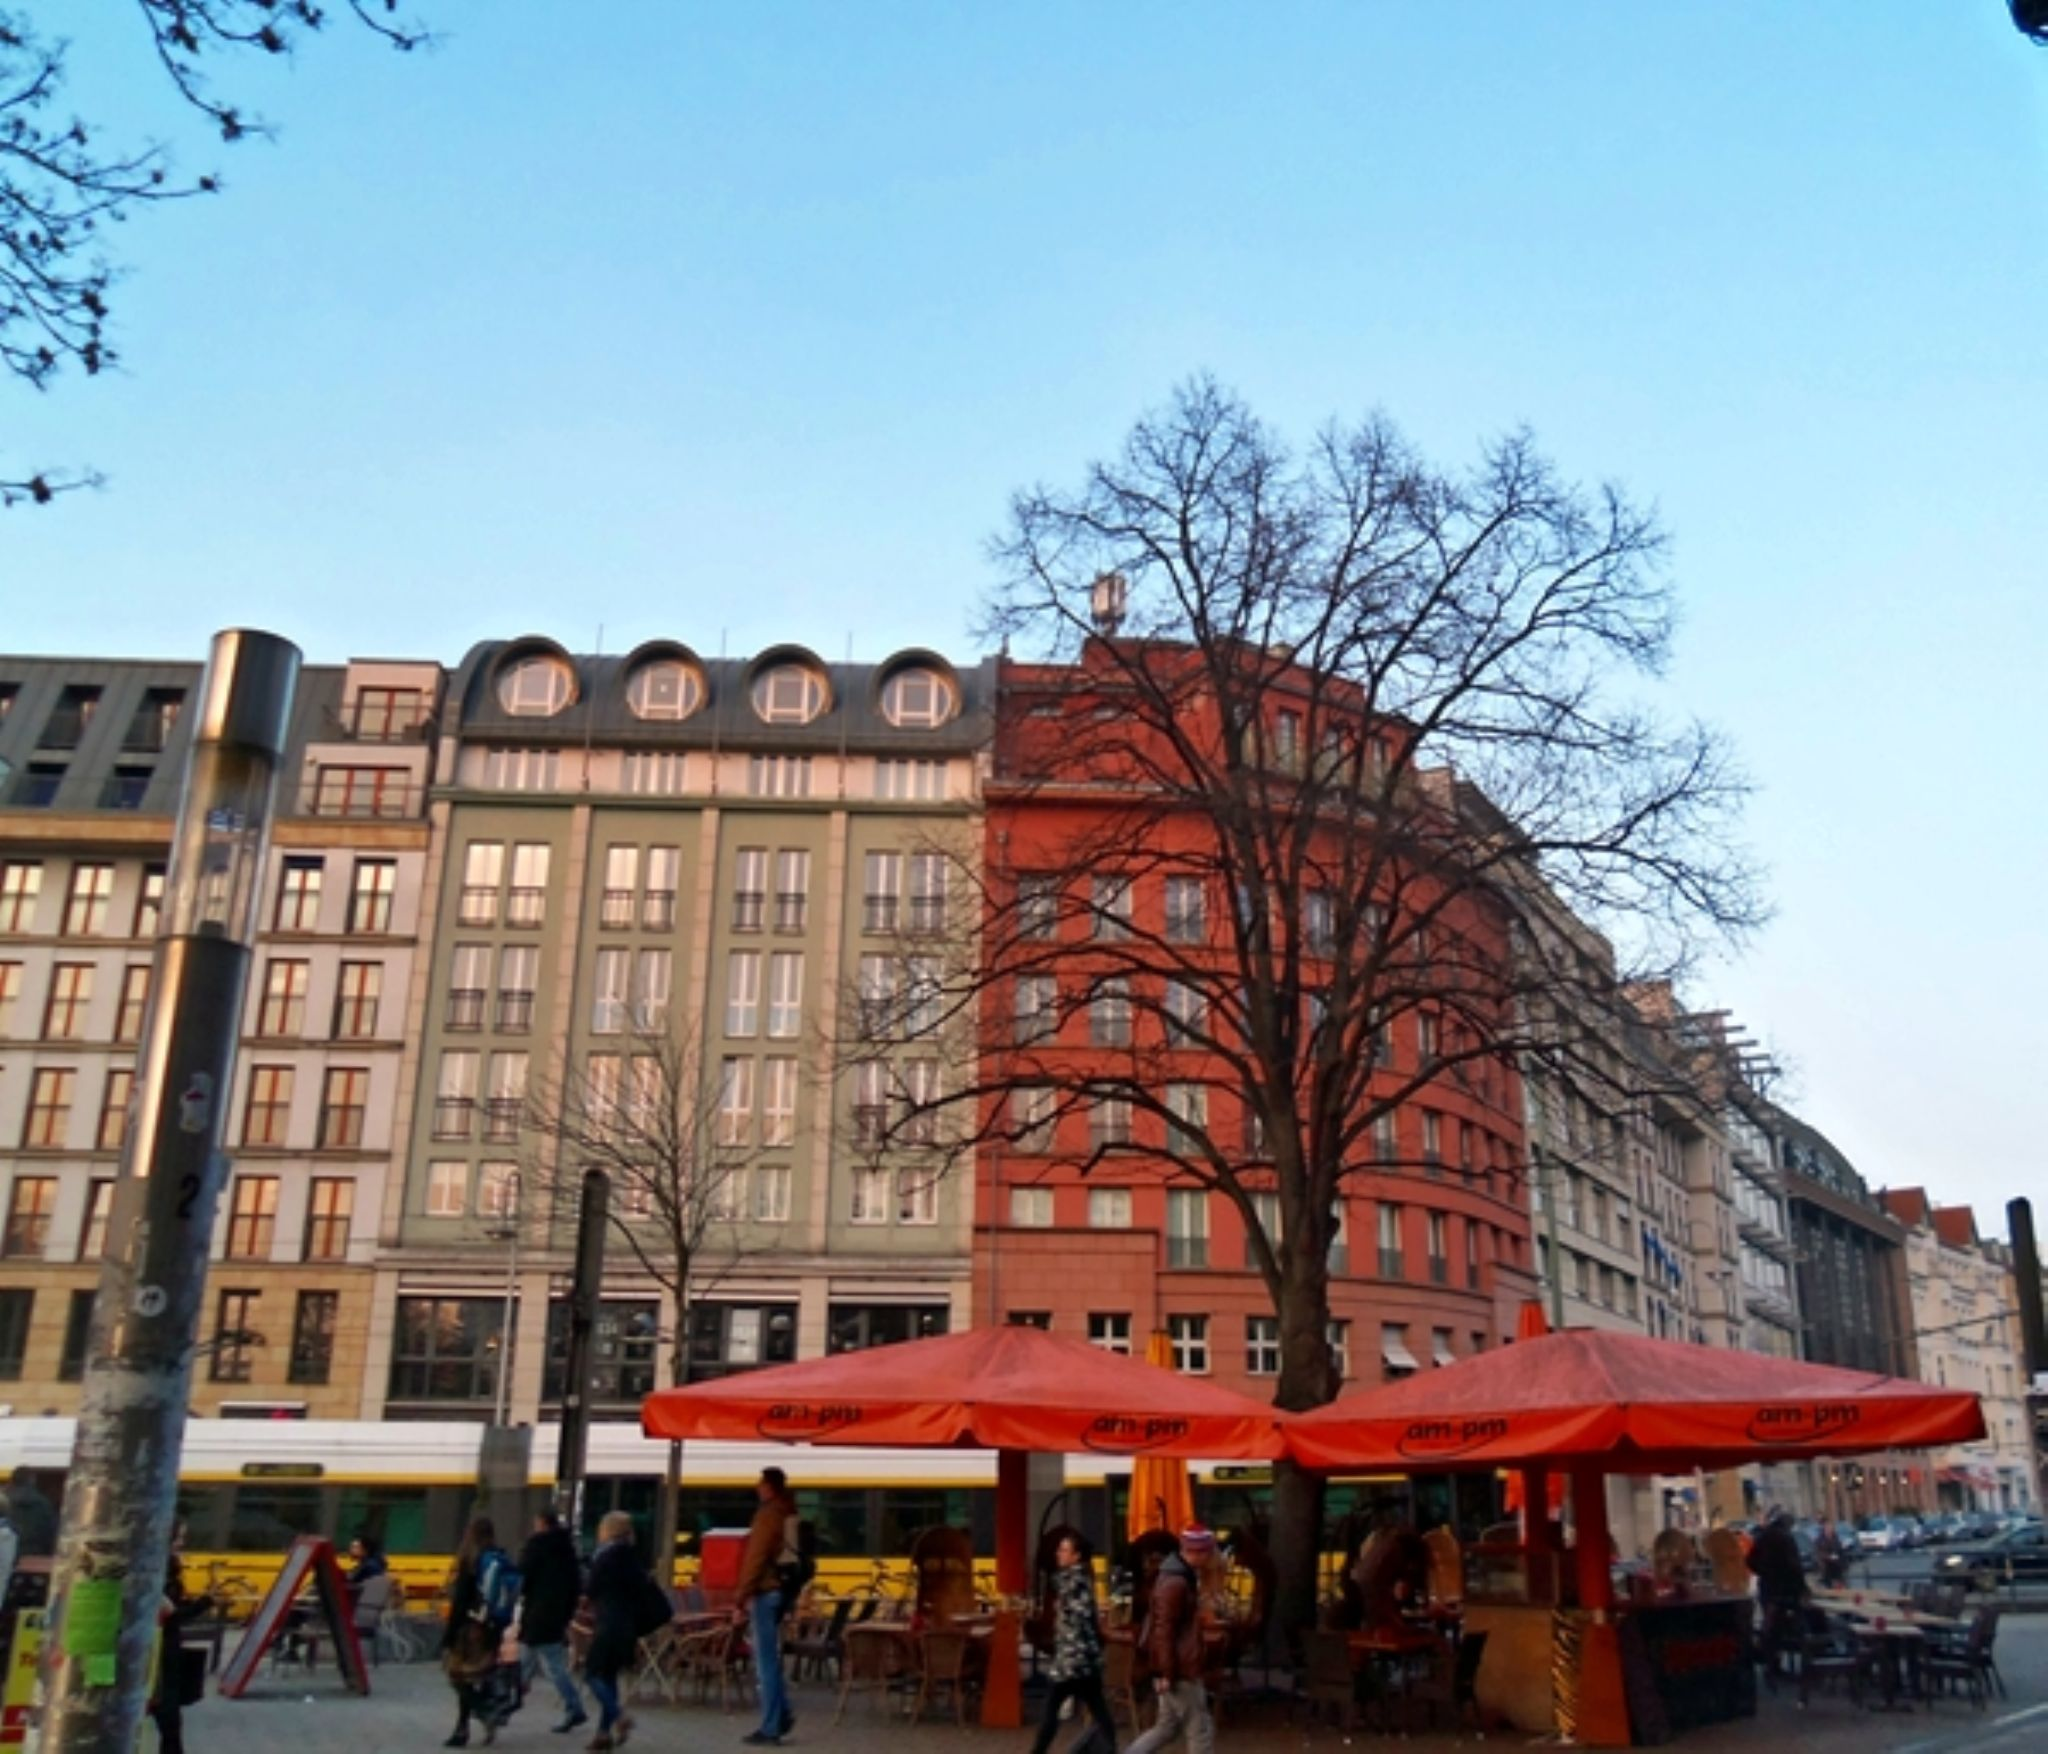 Berlin, Germany by MariaAthanasopoulou